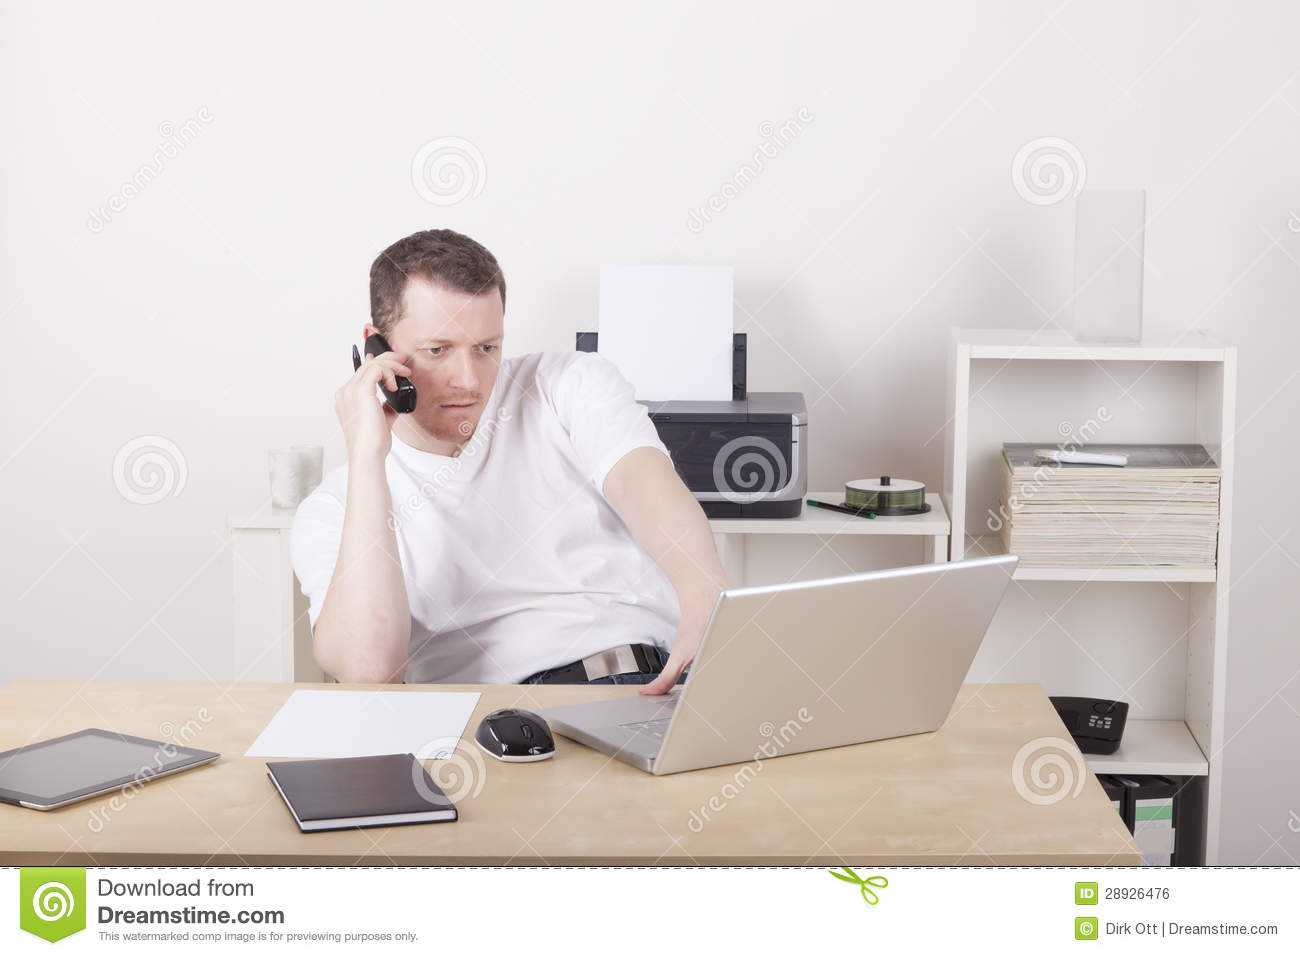 call computer home laptop man office phone working